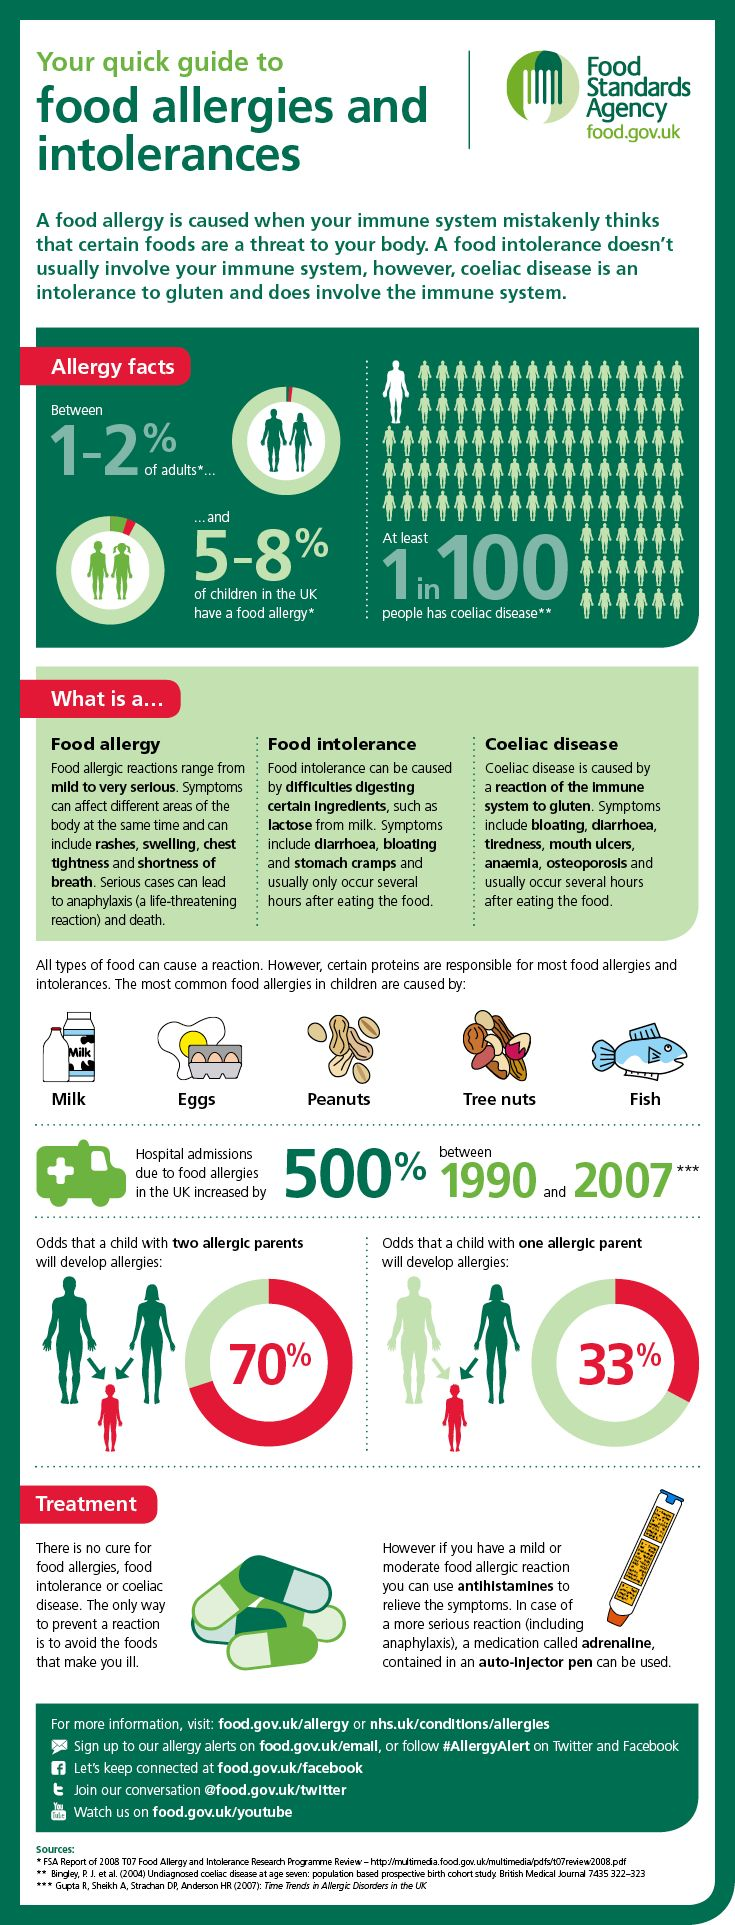 Quick Guide To Food Allergies and IntolerancesOLGA ROGERS